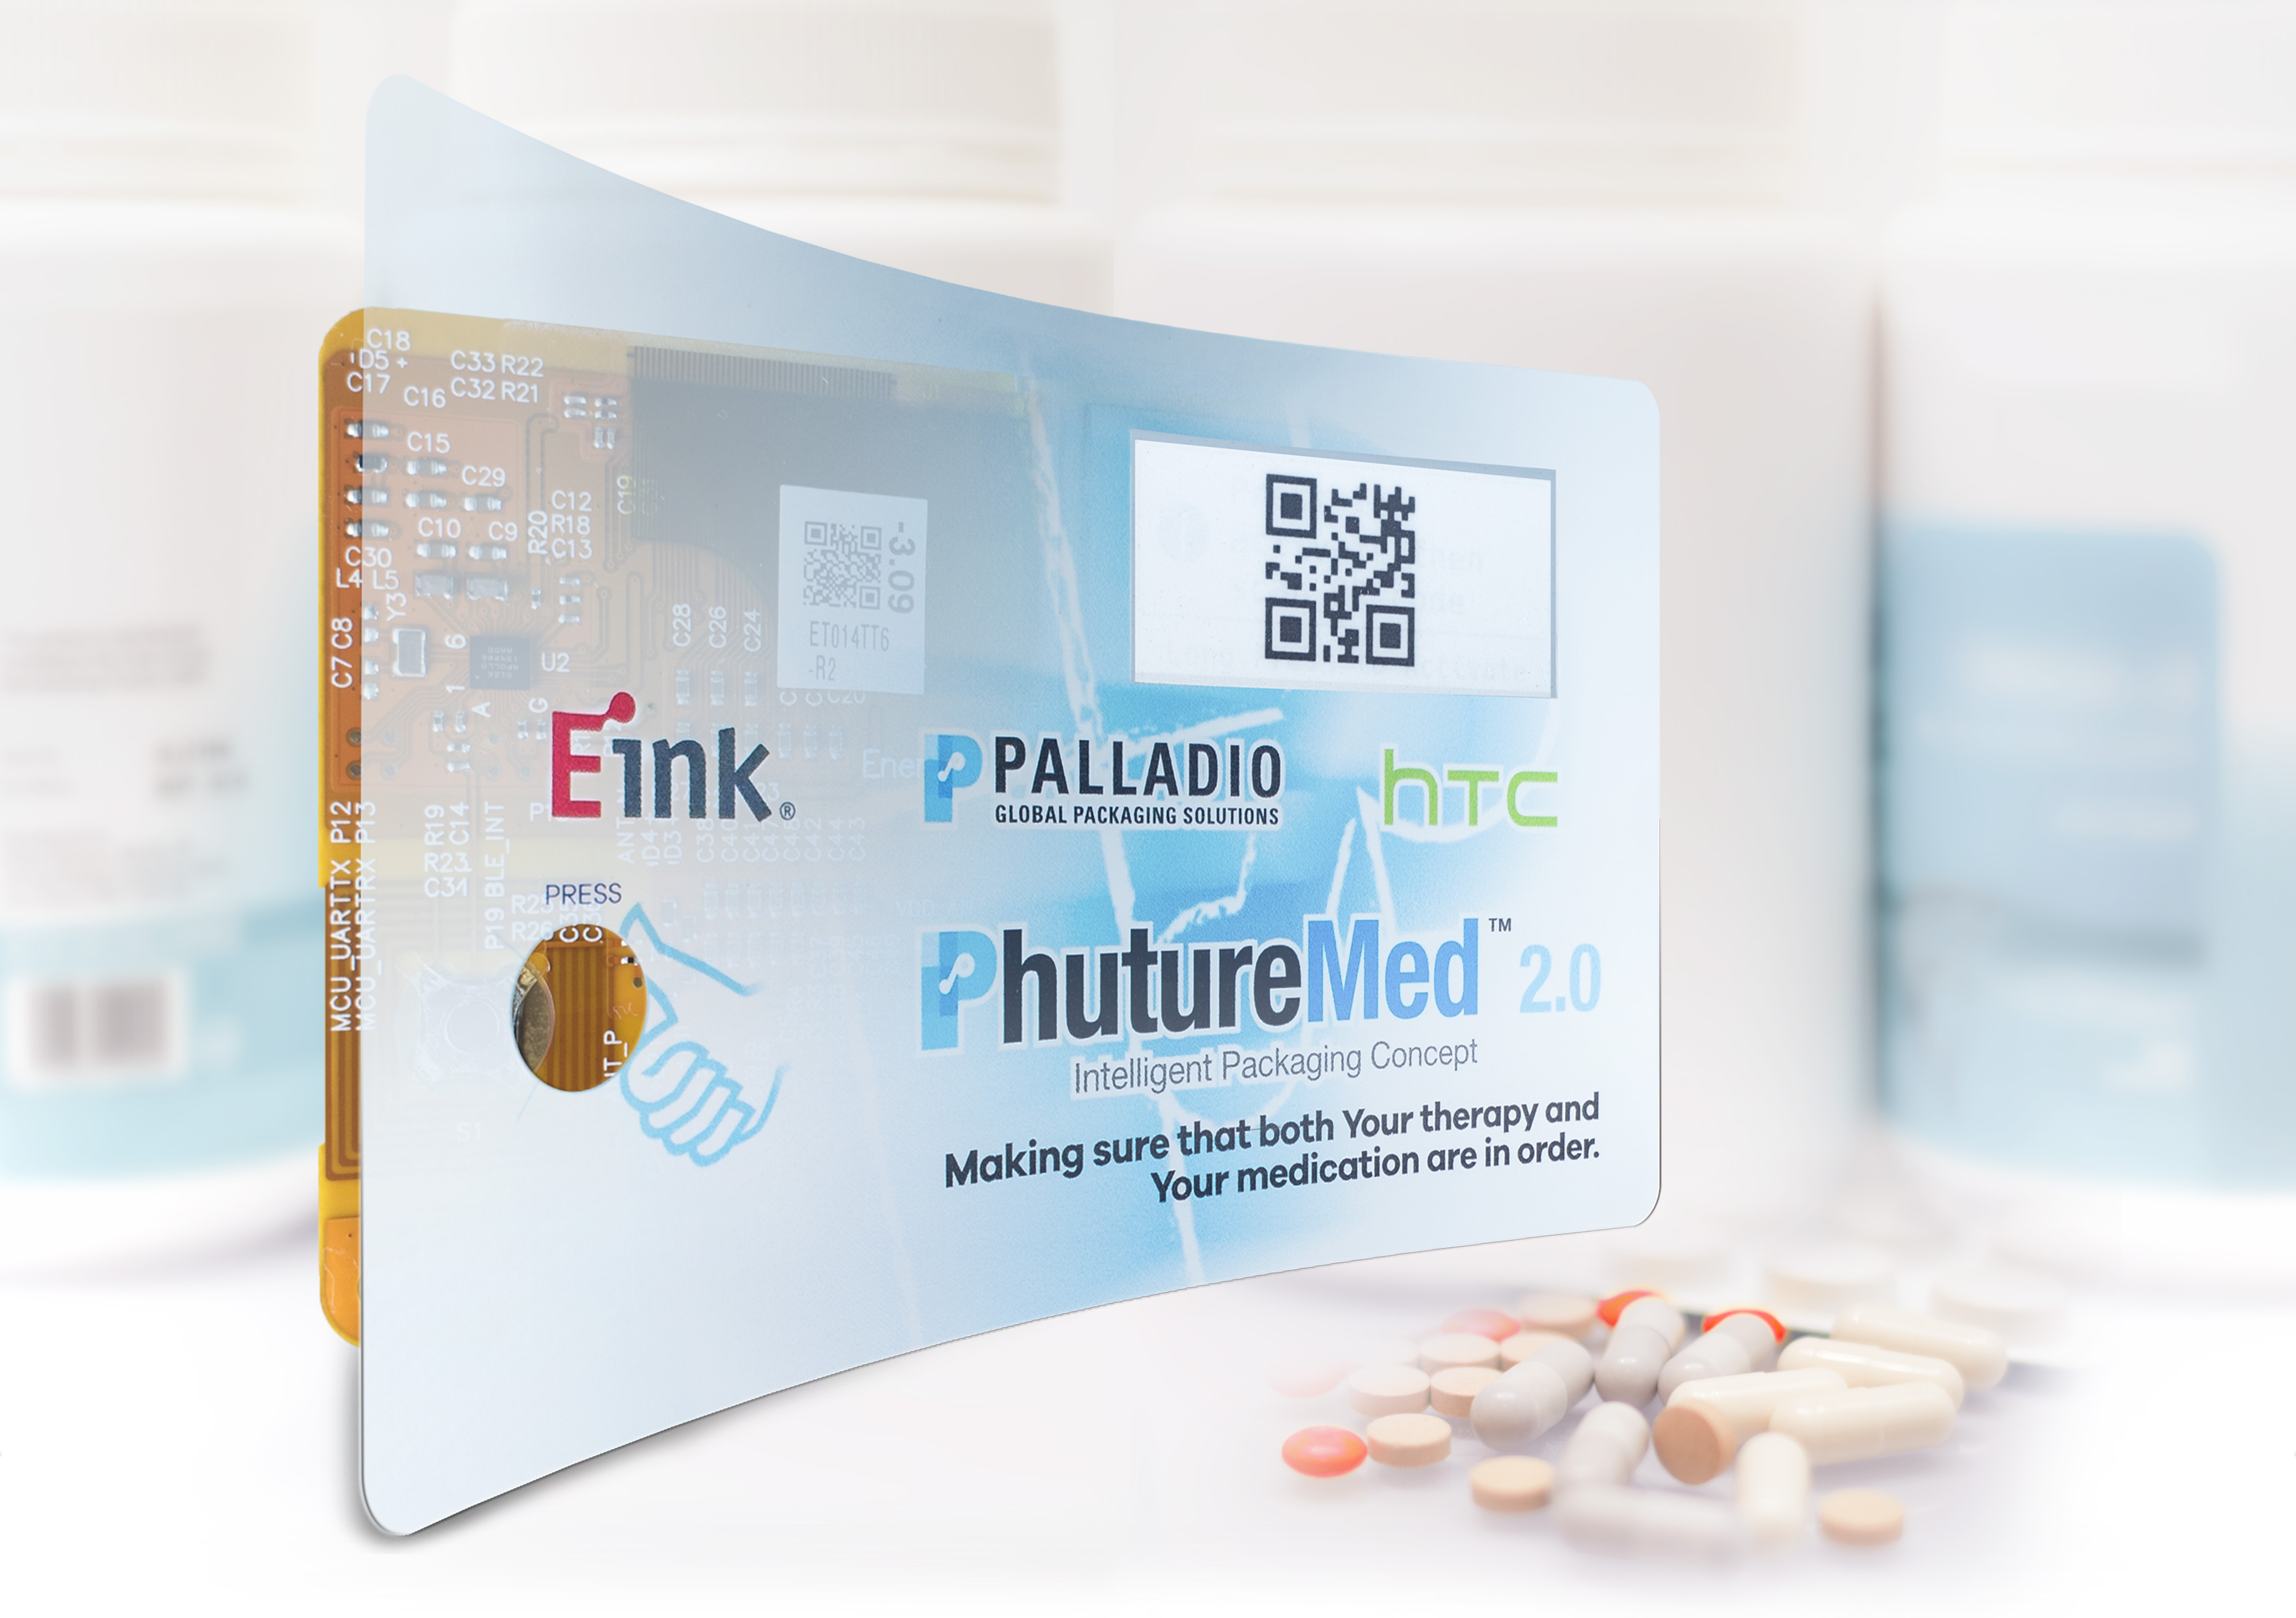 E Ink, HTC and Palladio Collaborate to Develop Smart Packaging Label for IoT-based Healthcare Services (Graphic: Business Wire)